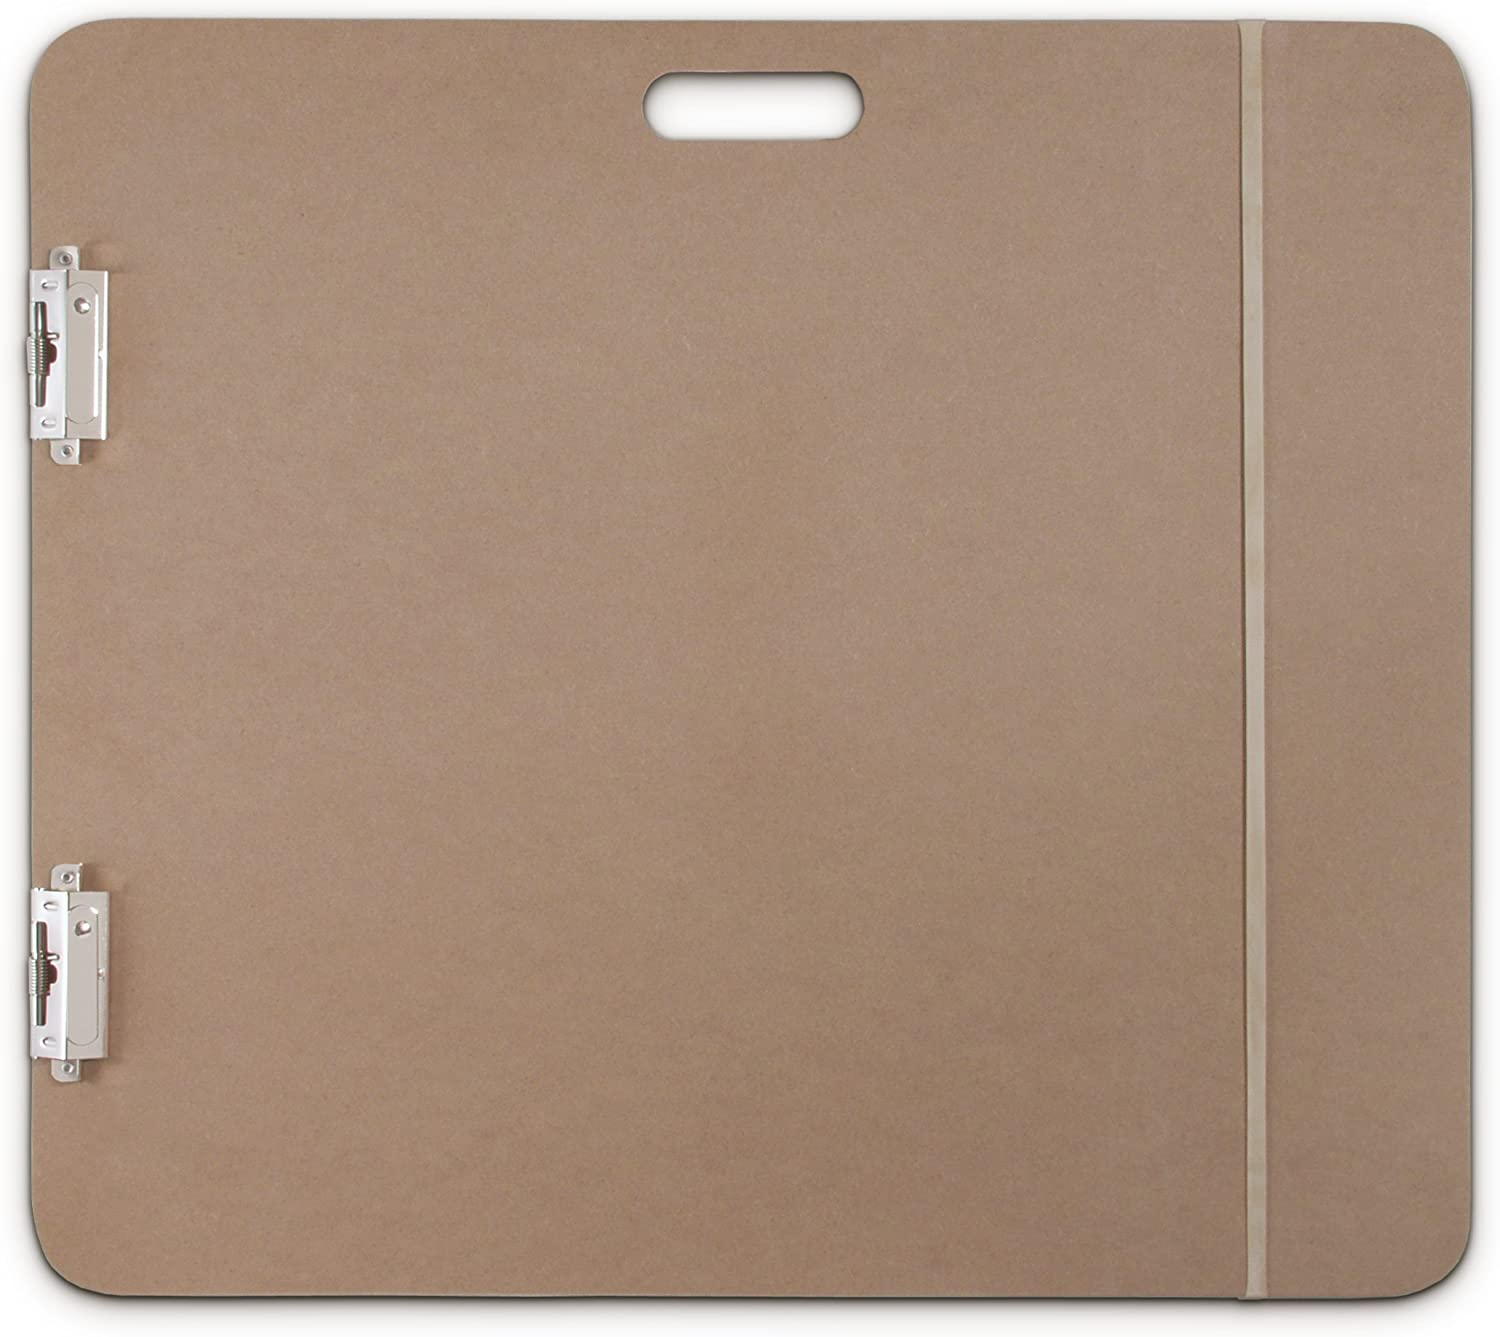 Clipboard with Built-in Handle Solid Drawing Board for Artists Saunders 05607 Recycled Hardboard Sketchboard x 26 in and Creatives Students Brown 23 in